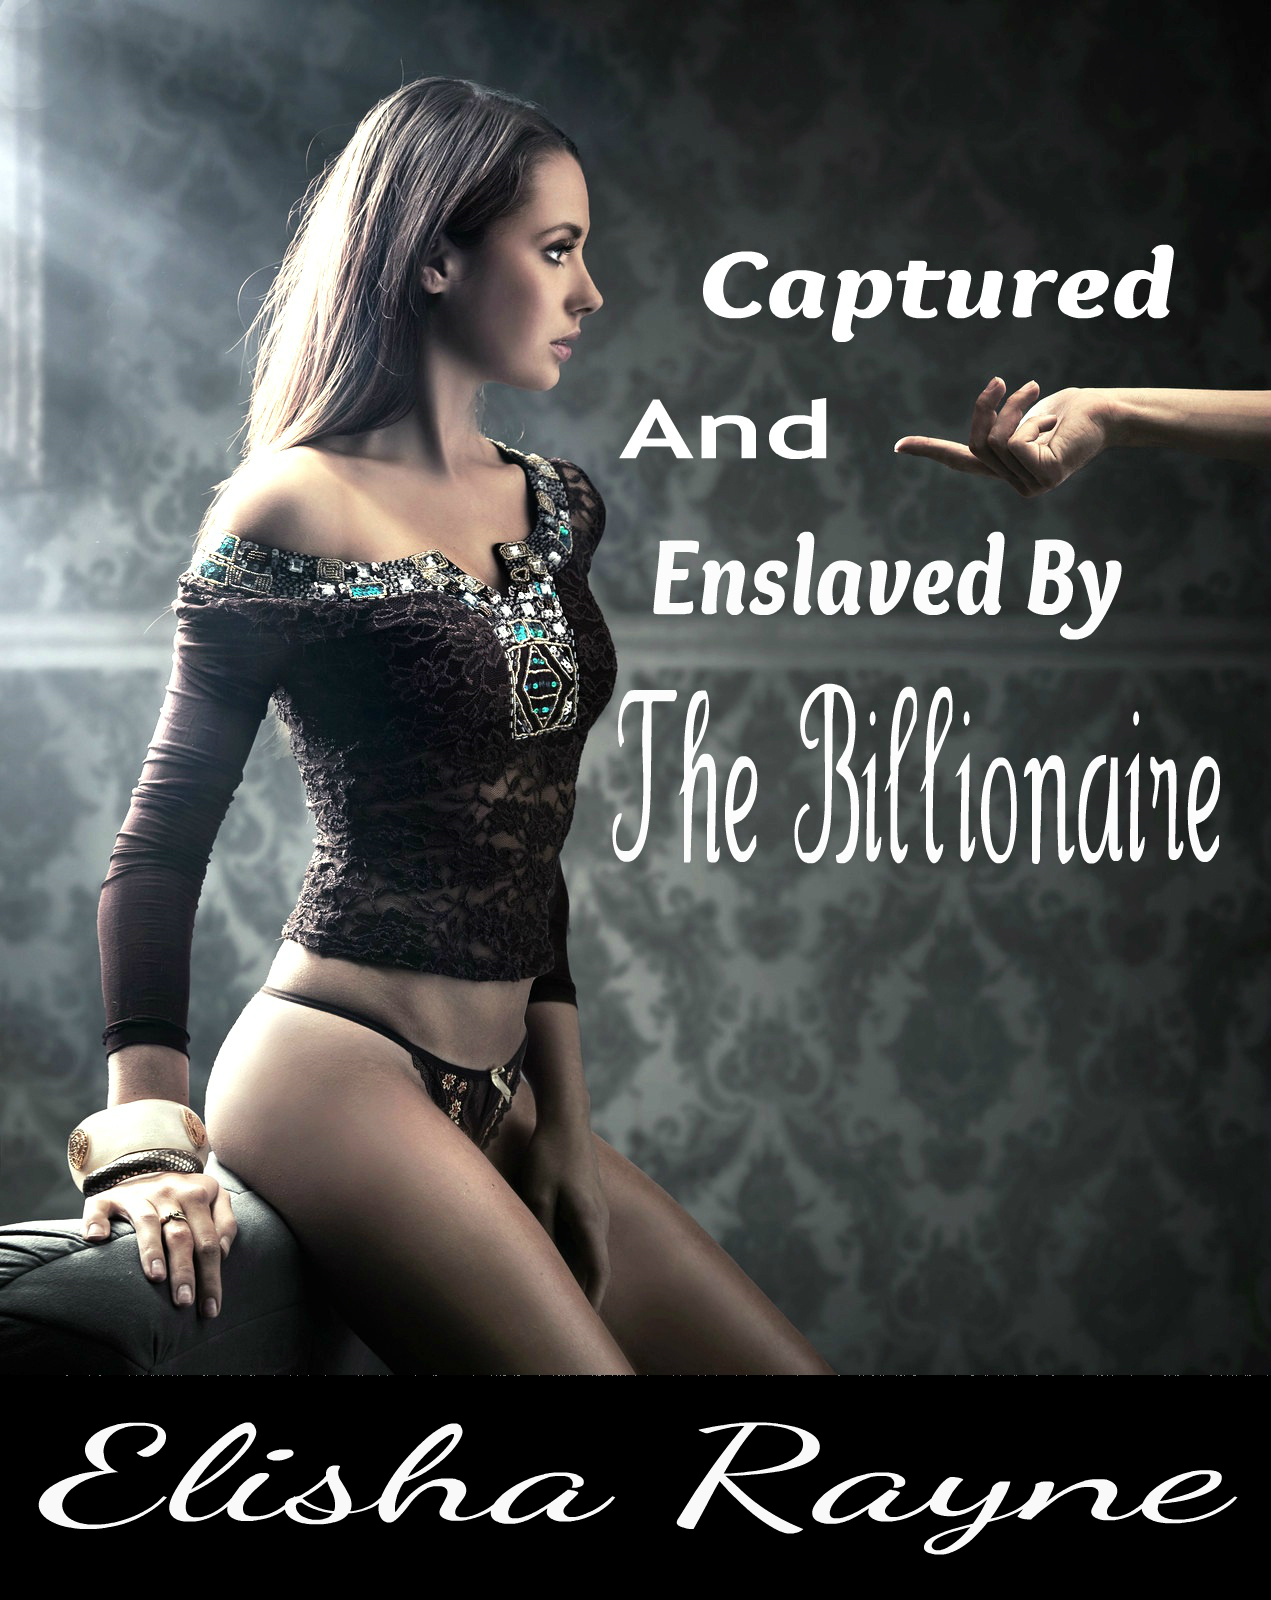 Captured and Enslaved by the Billionaire (BDSM Erotica)